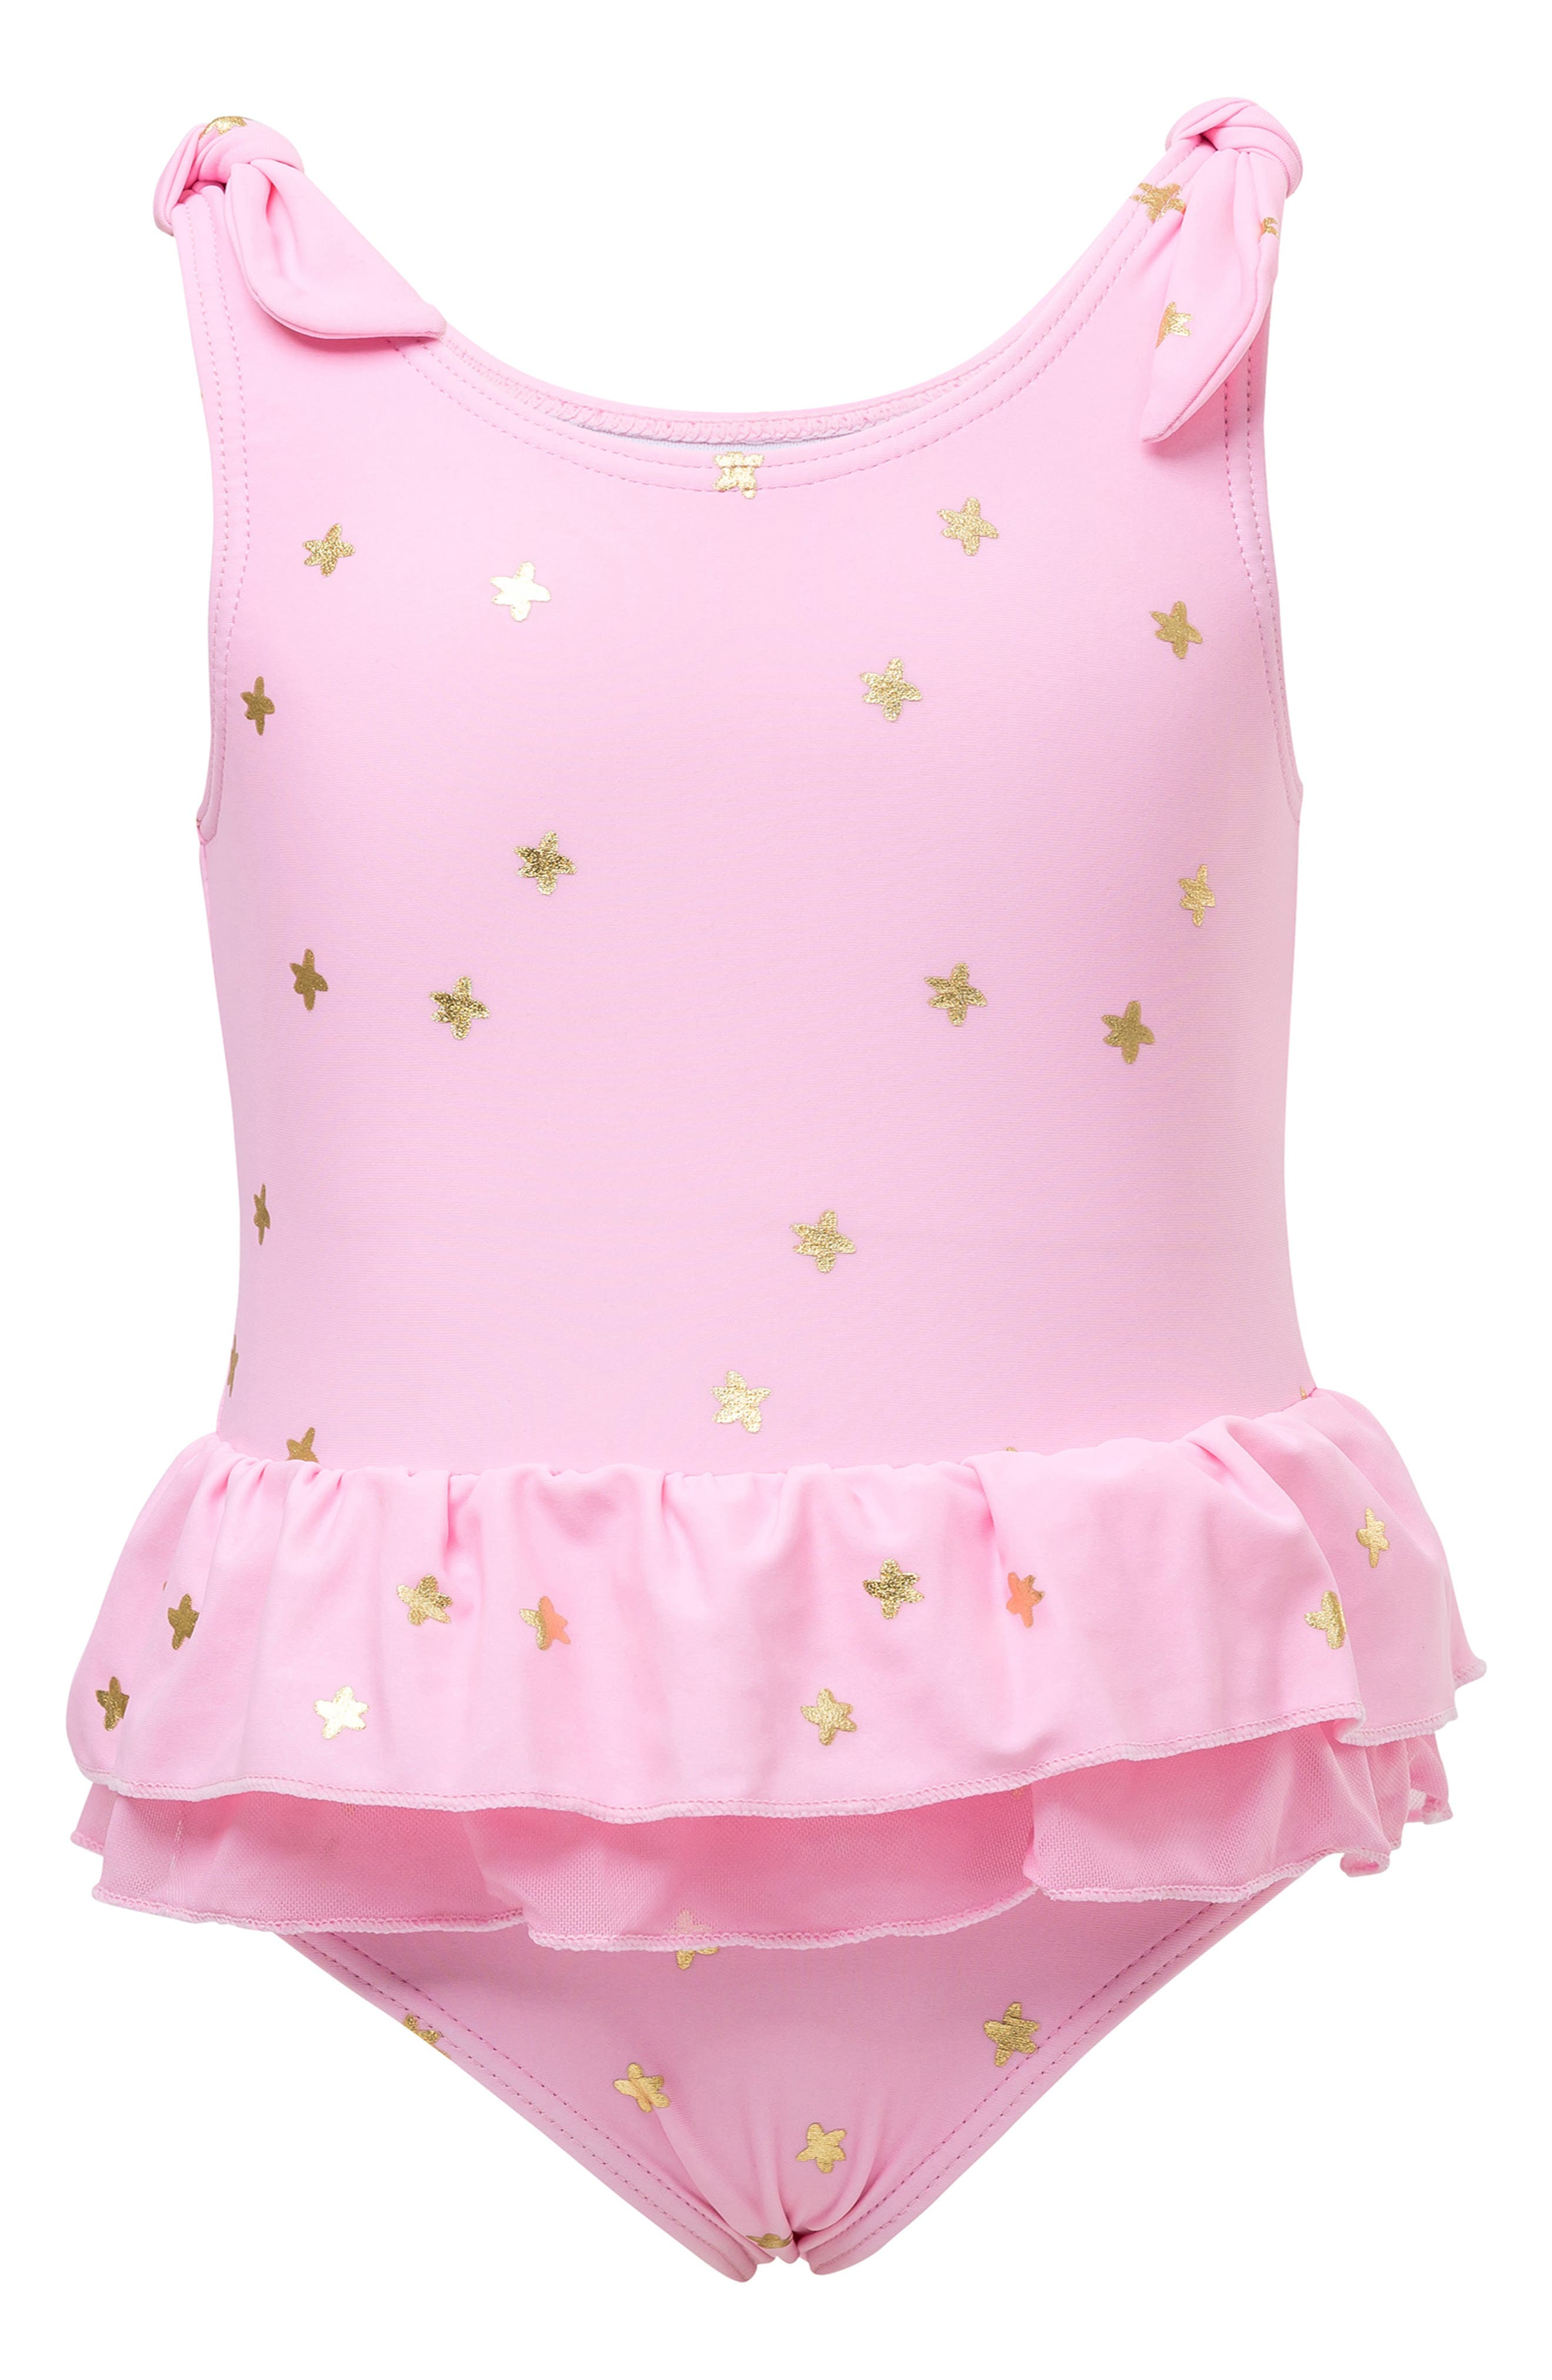 Infant Girls Snapper Rock Gold Stars OnePiece Swimsuit Size 1824M  Pink